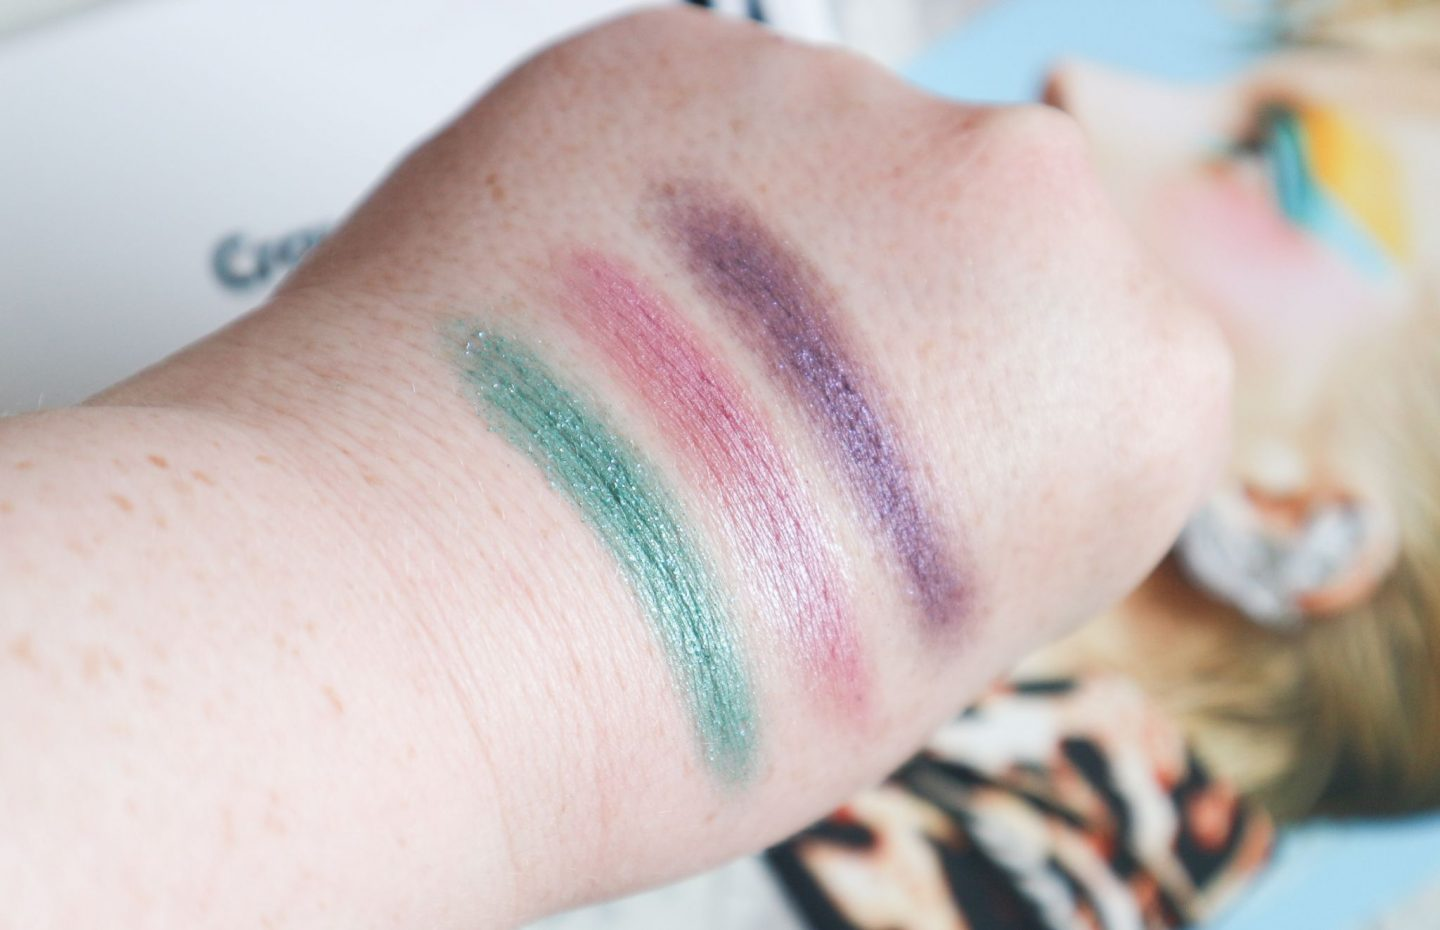 Crayola Eyeshadow Palette Mermaid swatches